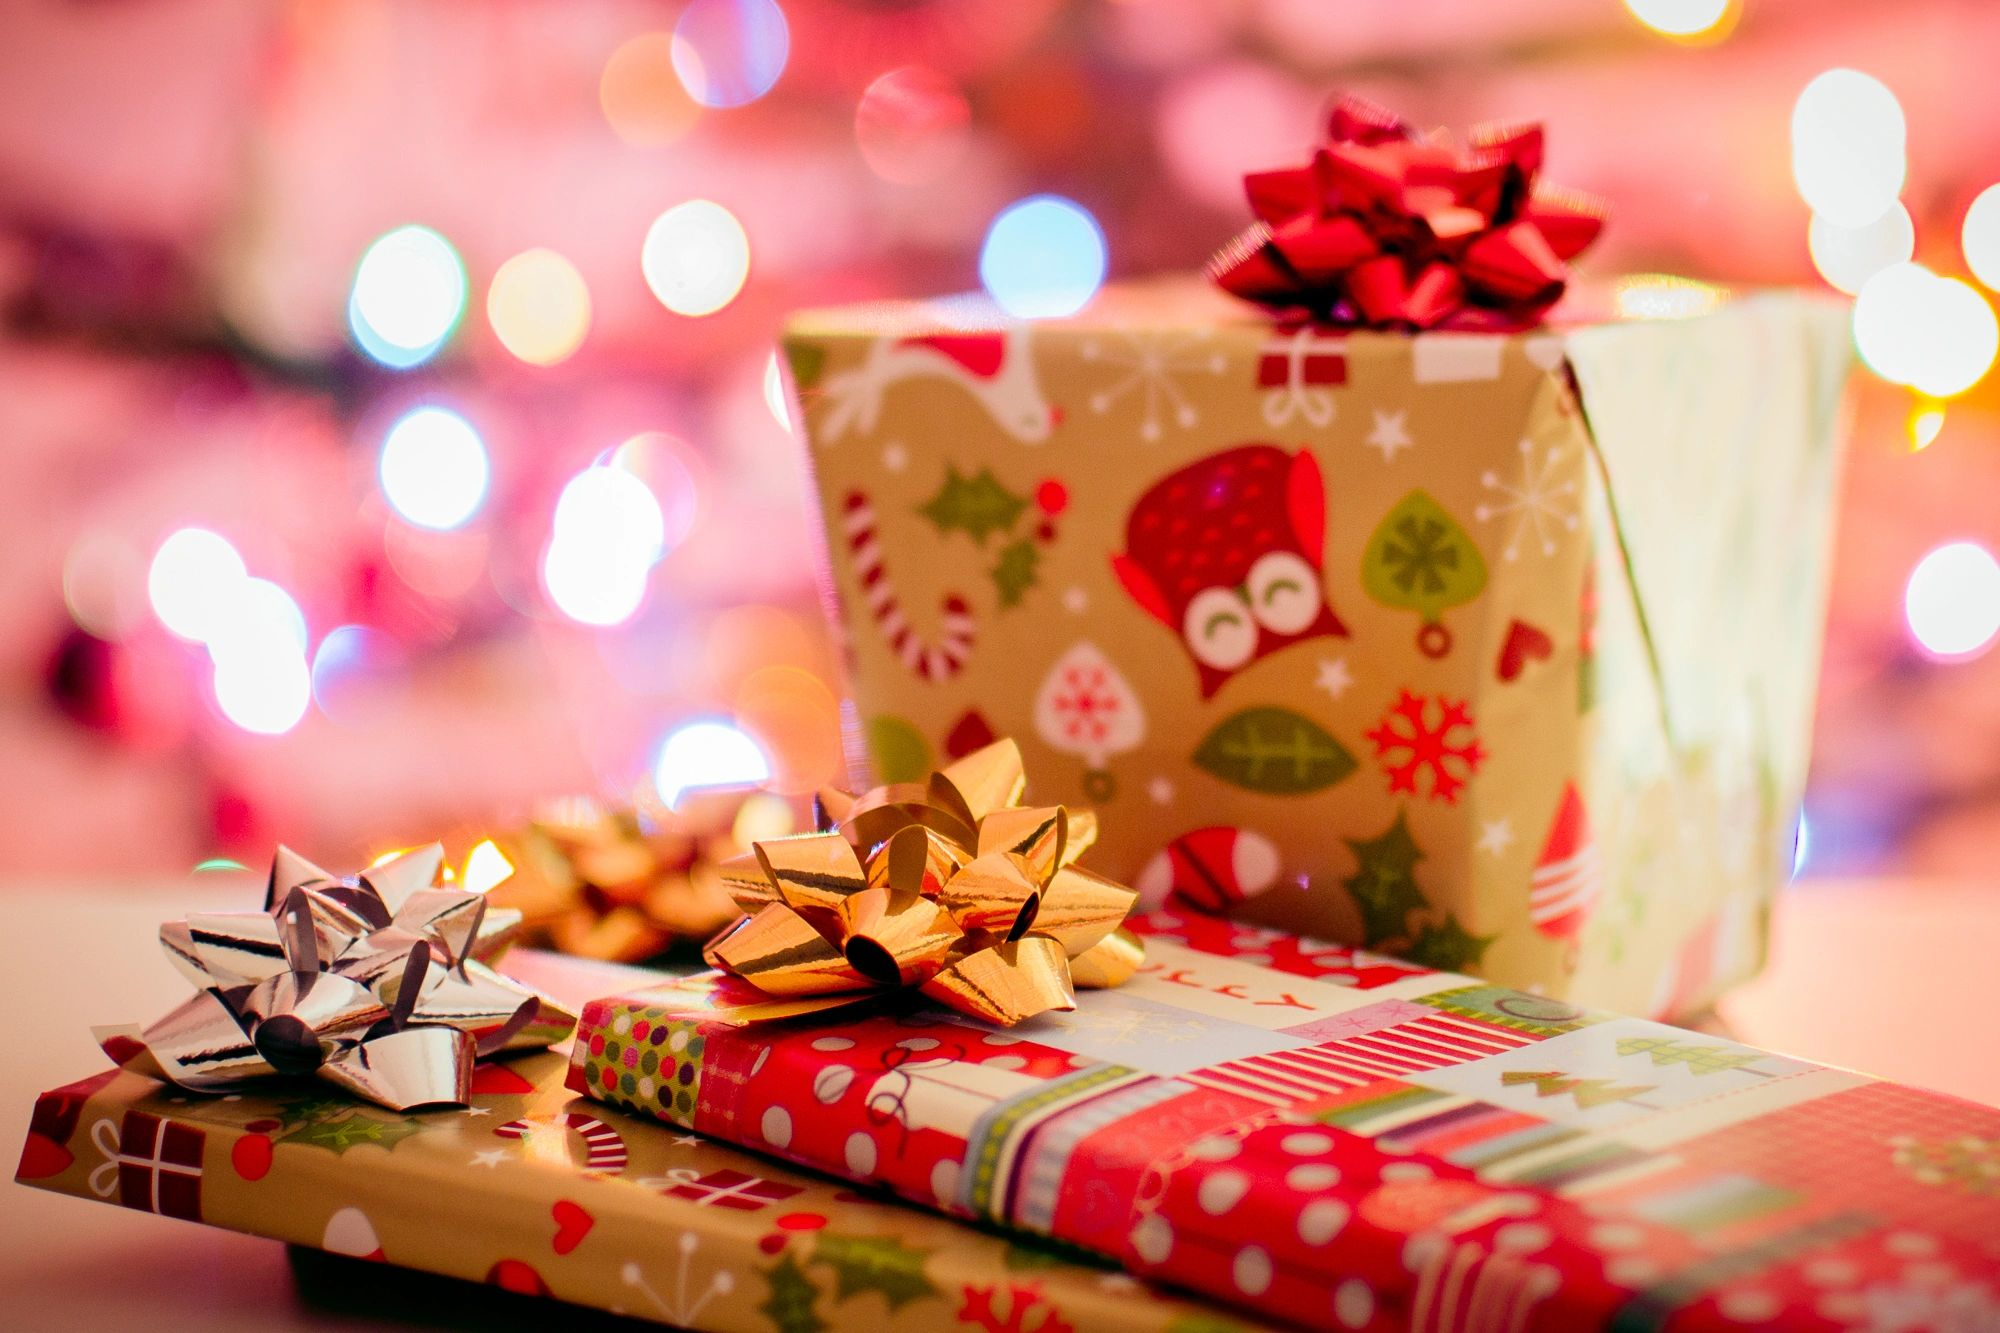 Christmas gifts left under a tree